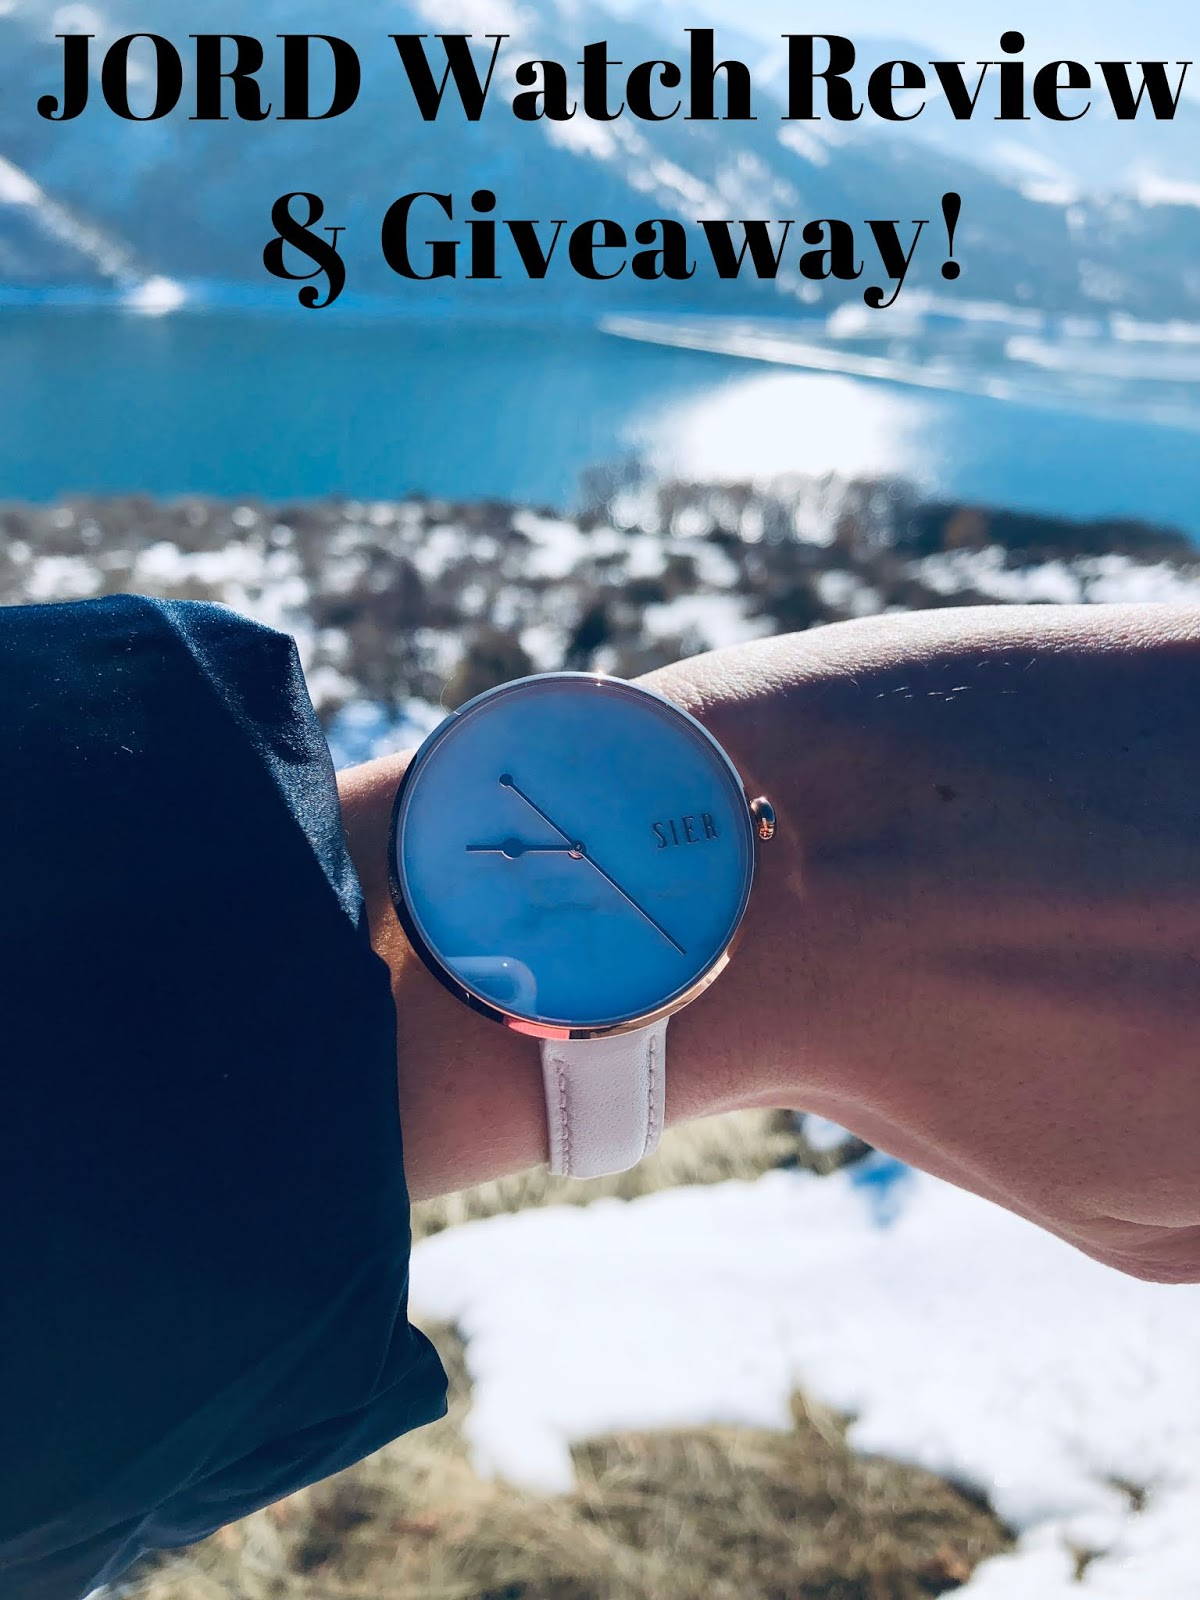 cute watches to wear, giveaway, JORD Sier Arcadia, JORD watches, love, valentines gift, watch giveaway, watch review,